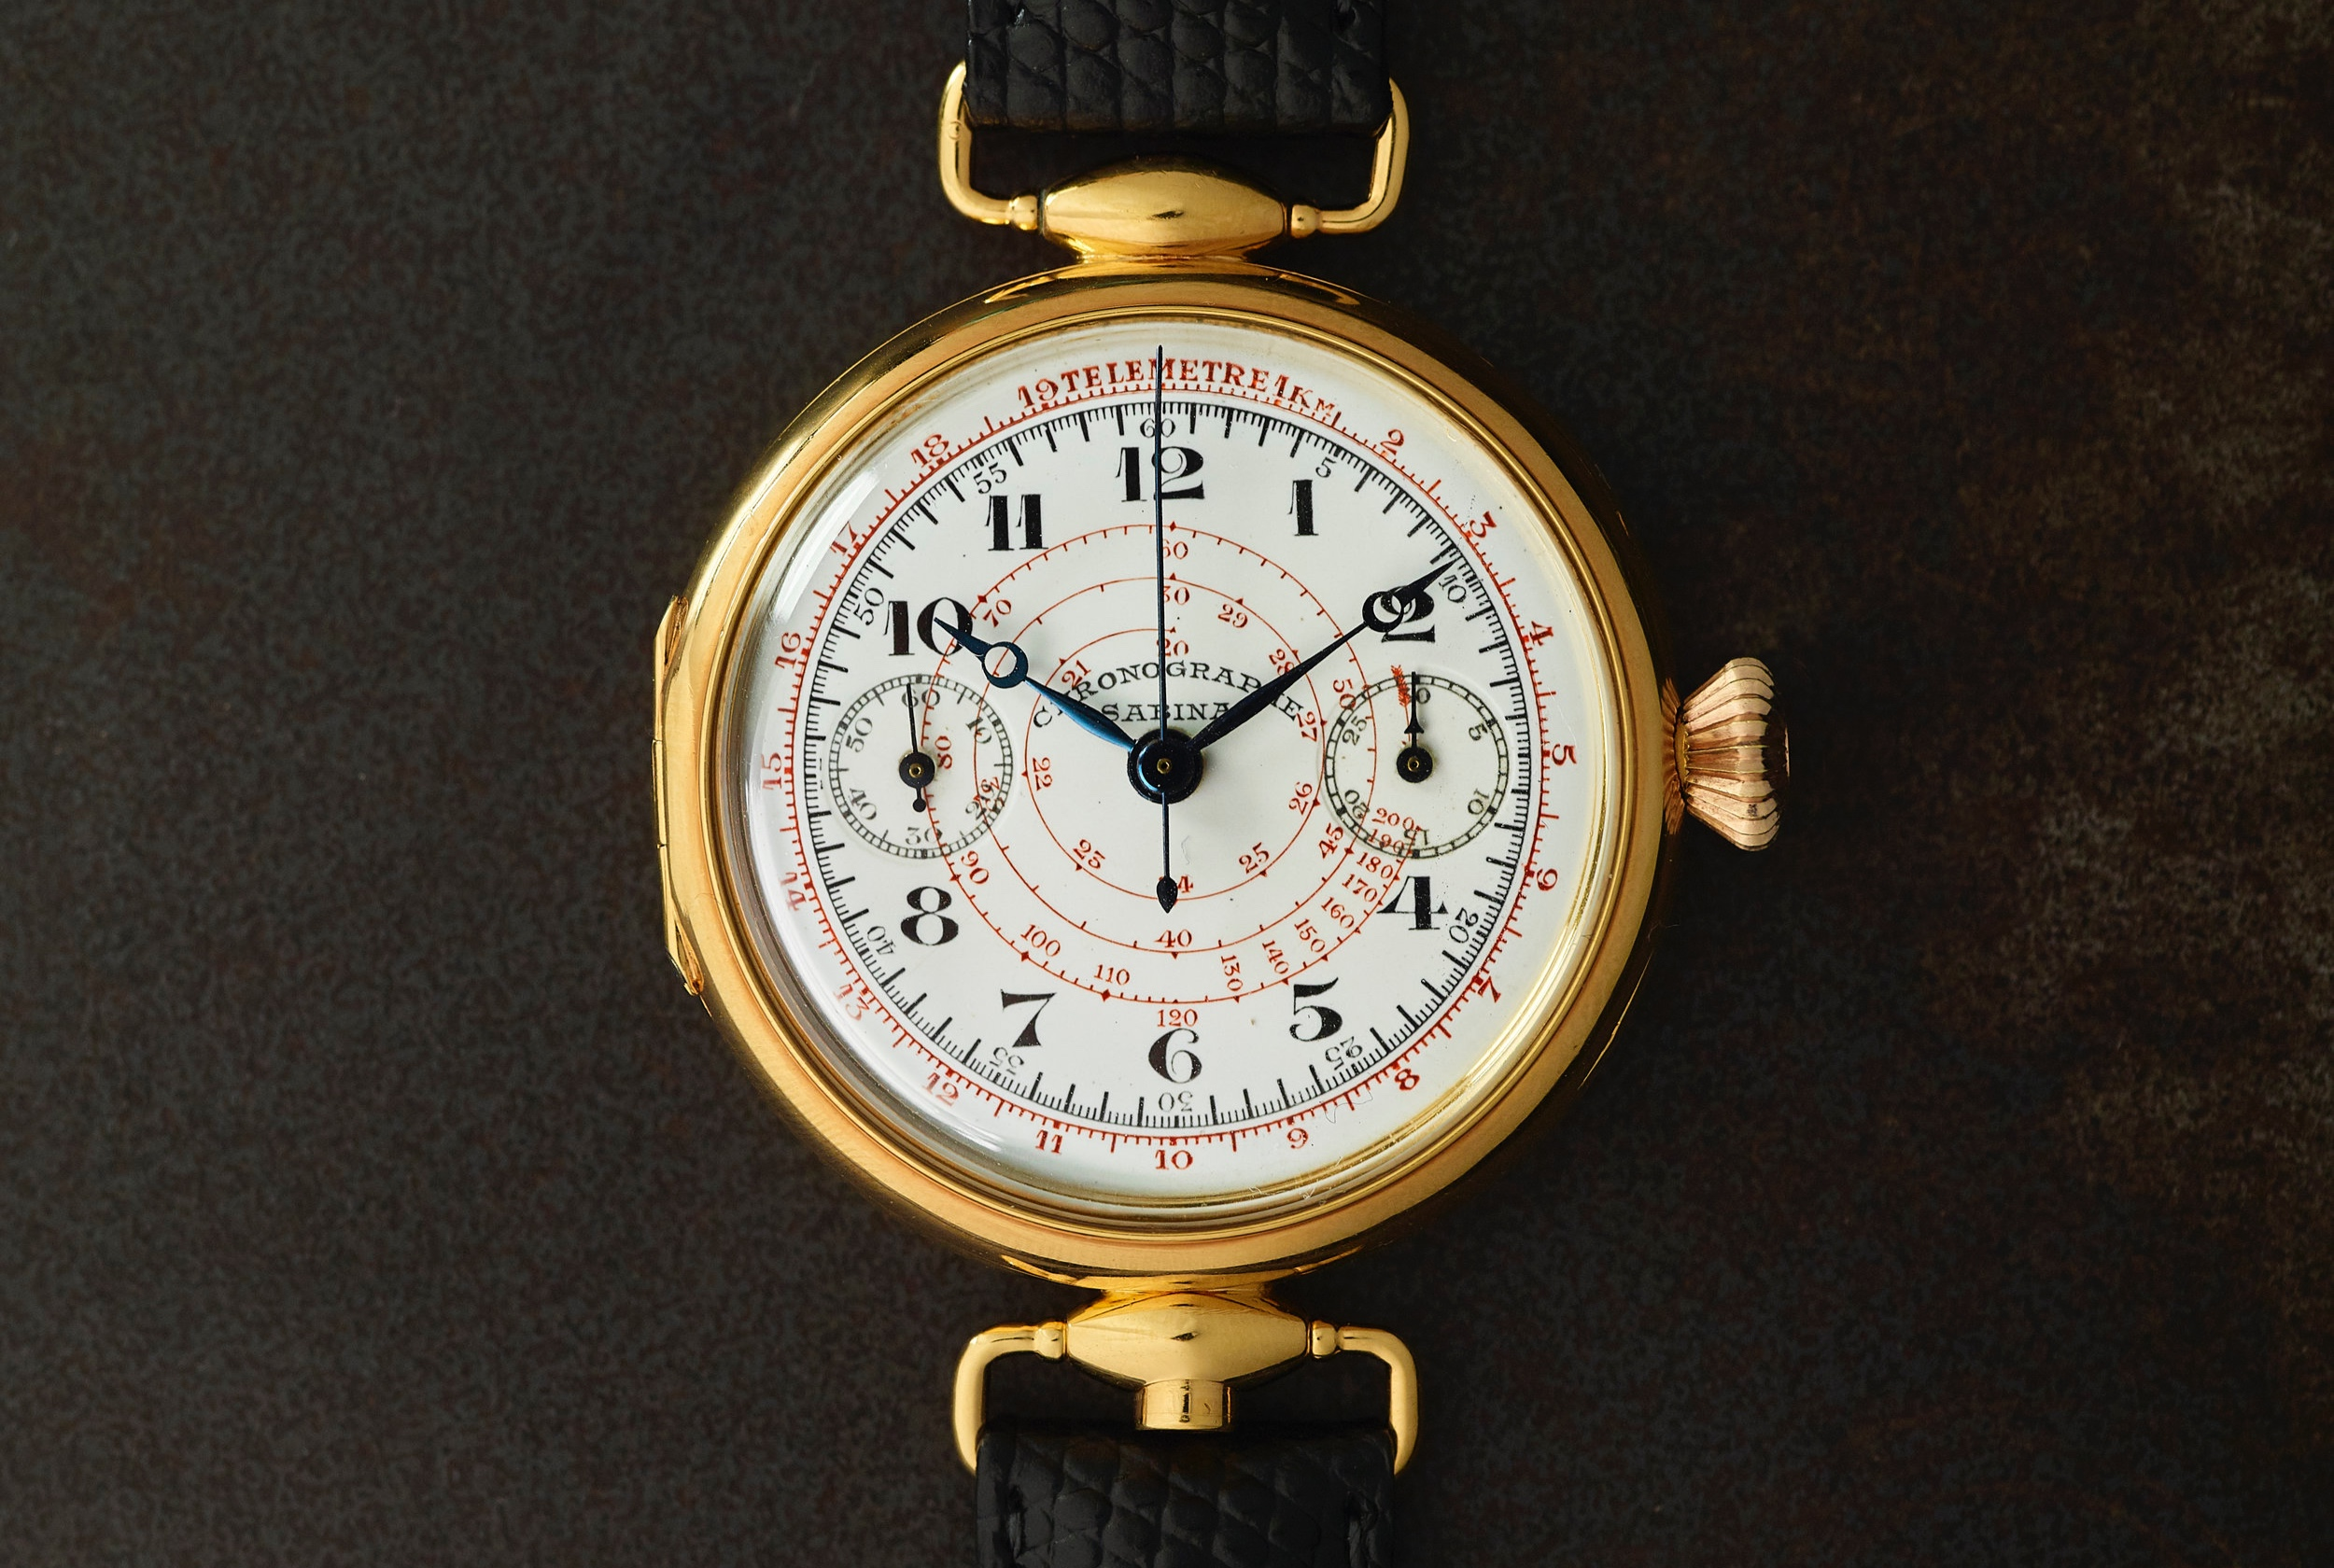 Struthers+watchmakers+restoration+vintage+watch